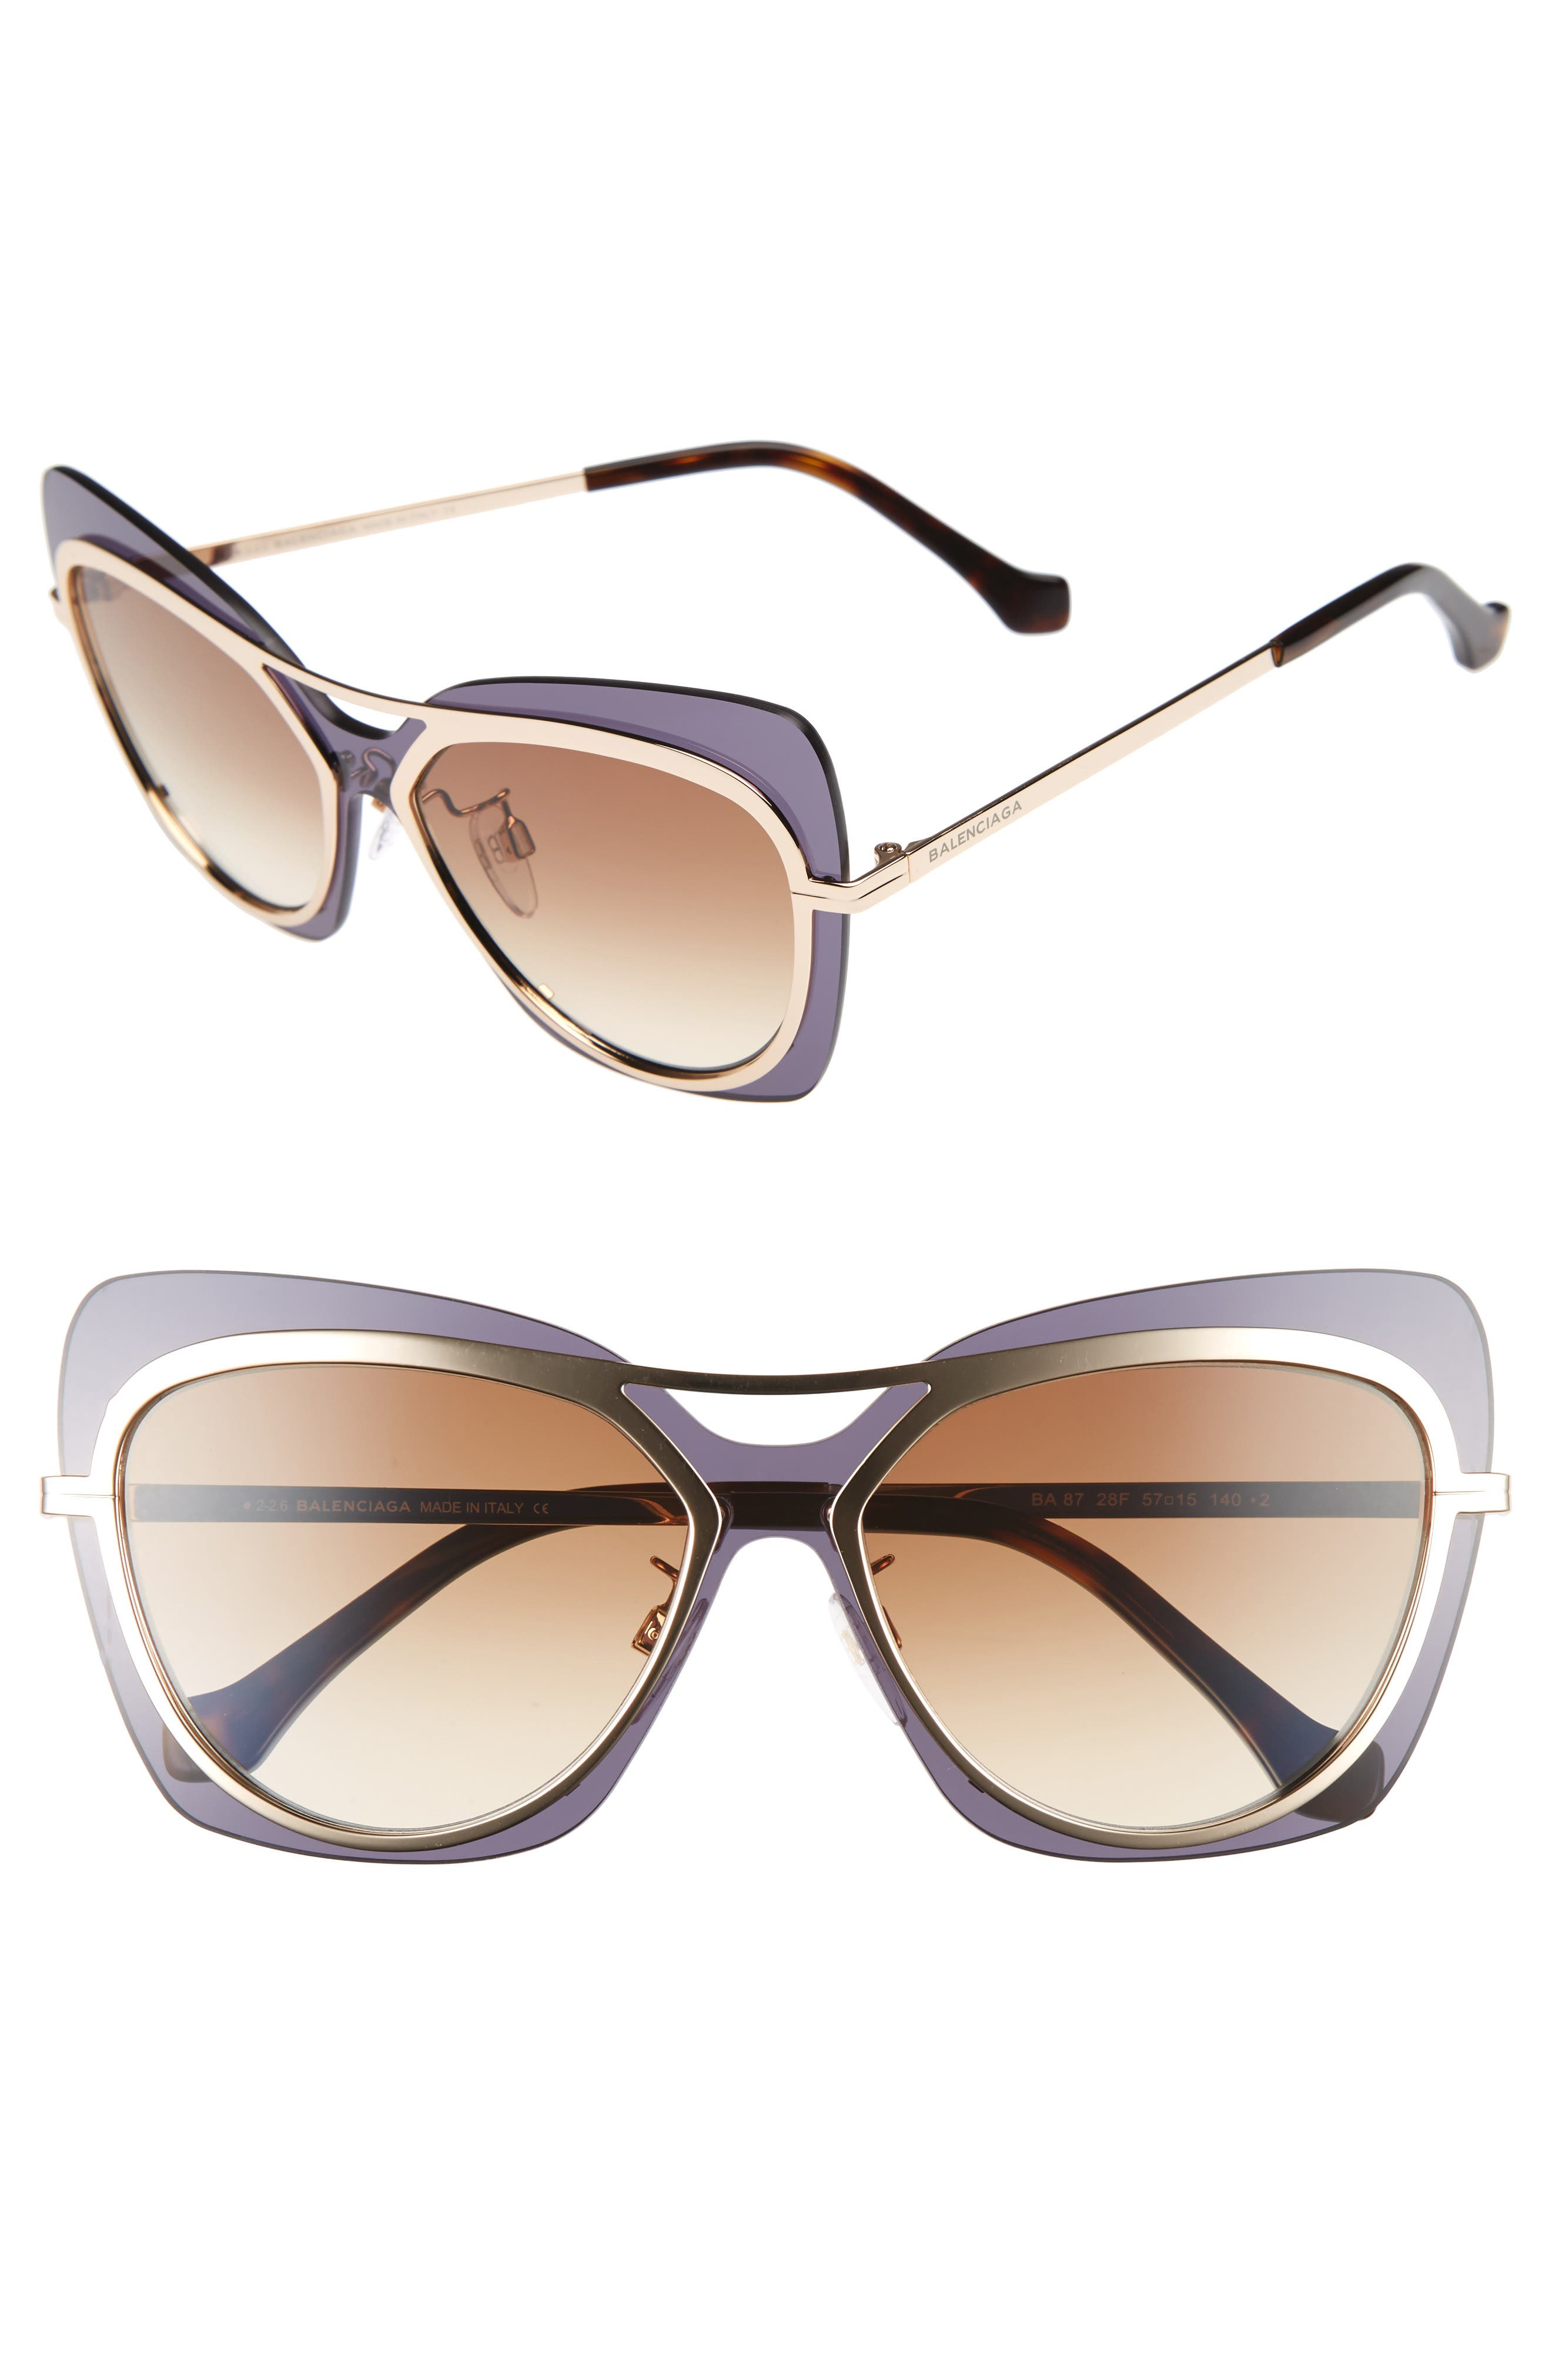 57mm Layered Butterfly Sunglasses,                         Main,                         color, Rose Gold/ Havana/ Brown